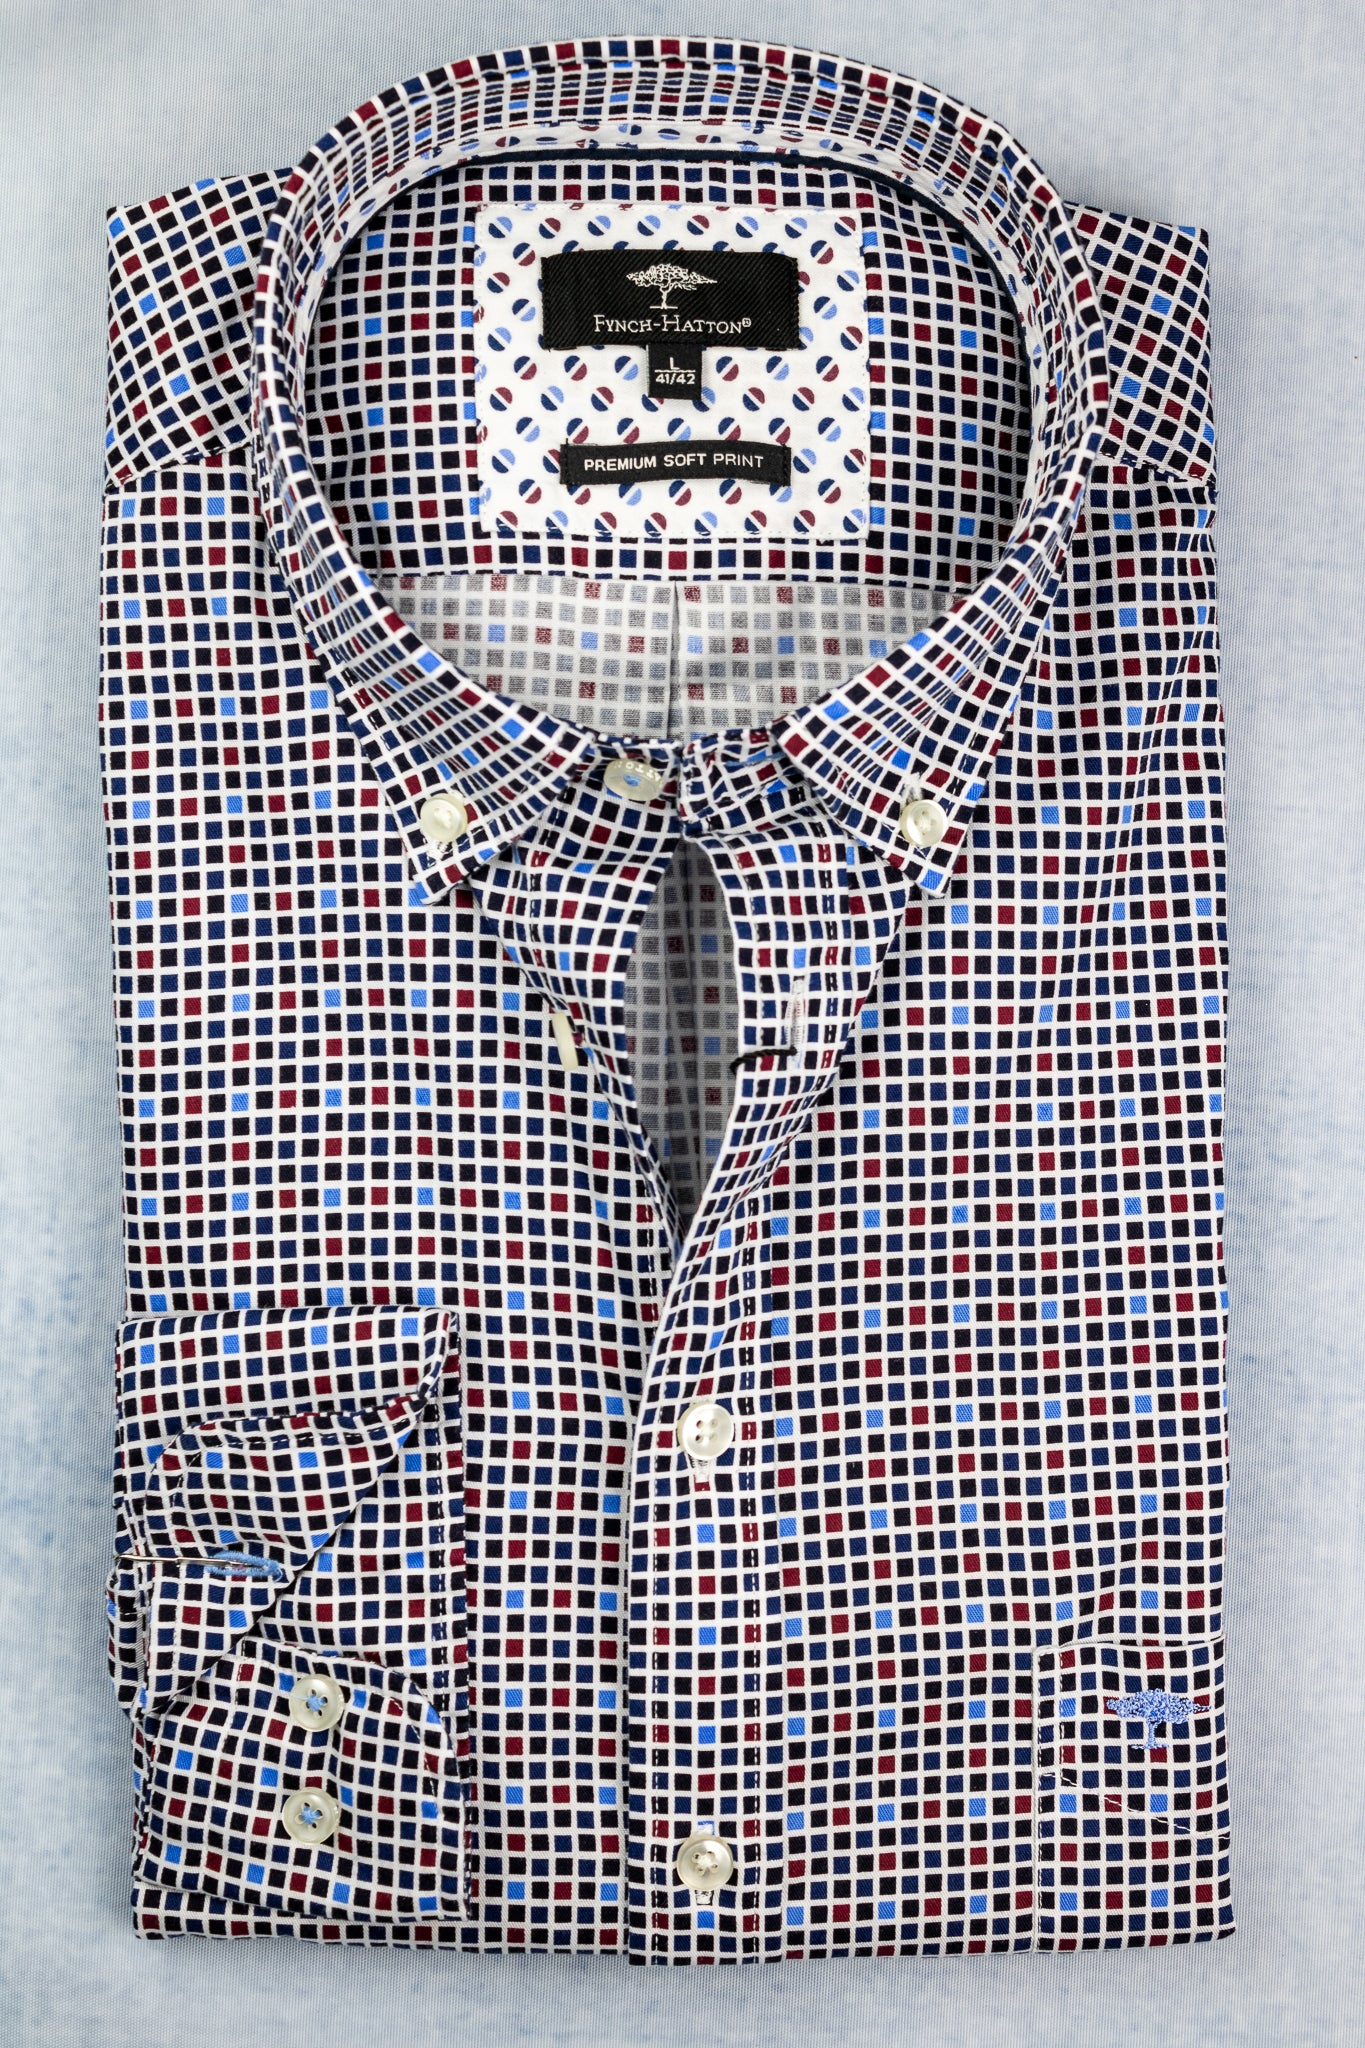 1220 6030 Fynch Hatten Printed Men's Shirt for sale online ireland